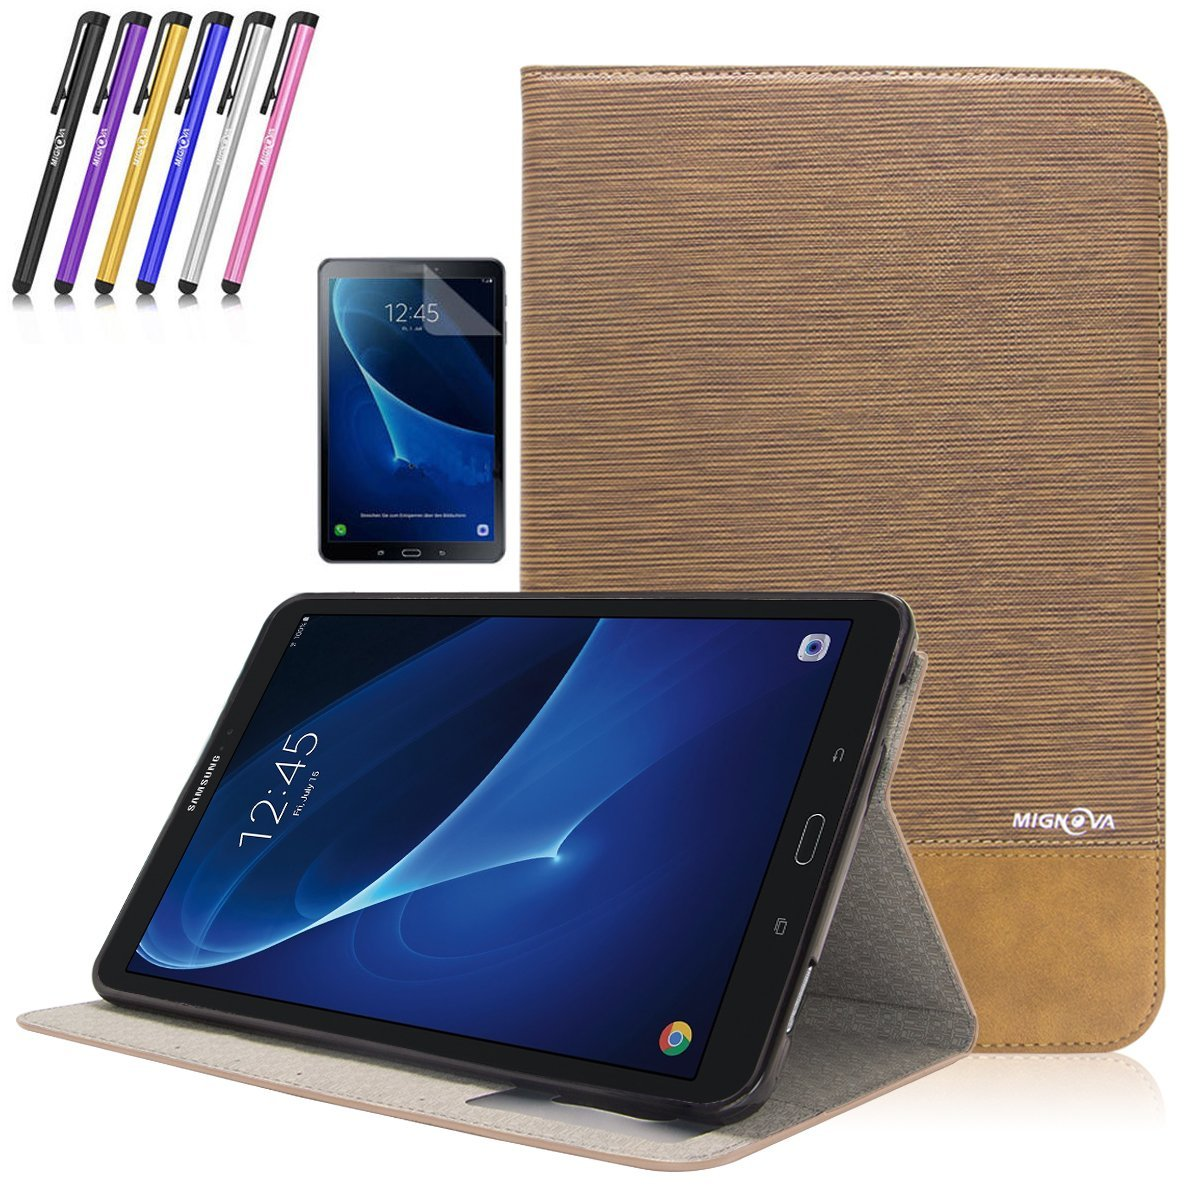 Samsung Galaxy Tab A 10.1 Case - Mignova Flip Stand Leather Folio Cover with Auto Sleep/Wake Feature for Tab A 10.1 Inch (SM-T580 / SM-T585) Tablet 2016 Release (Black)